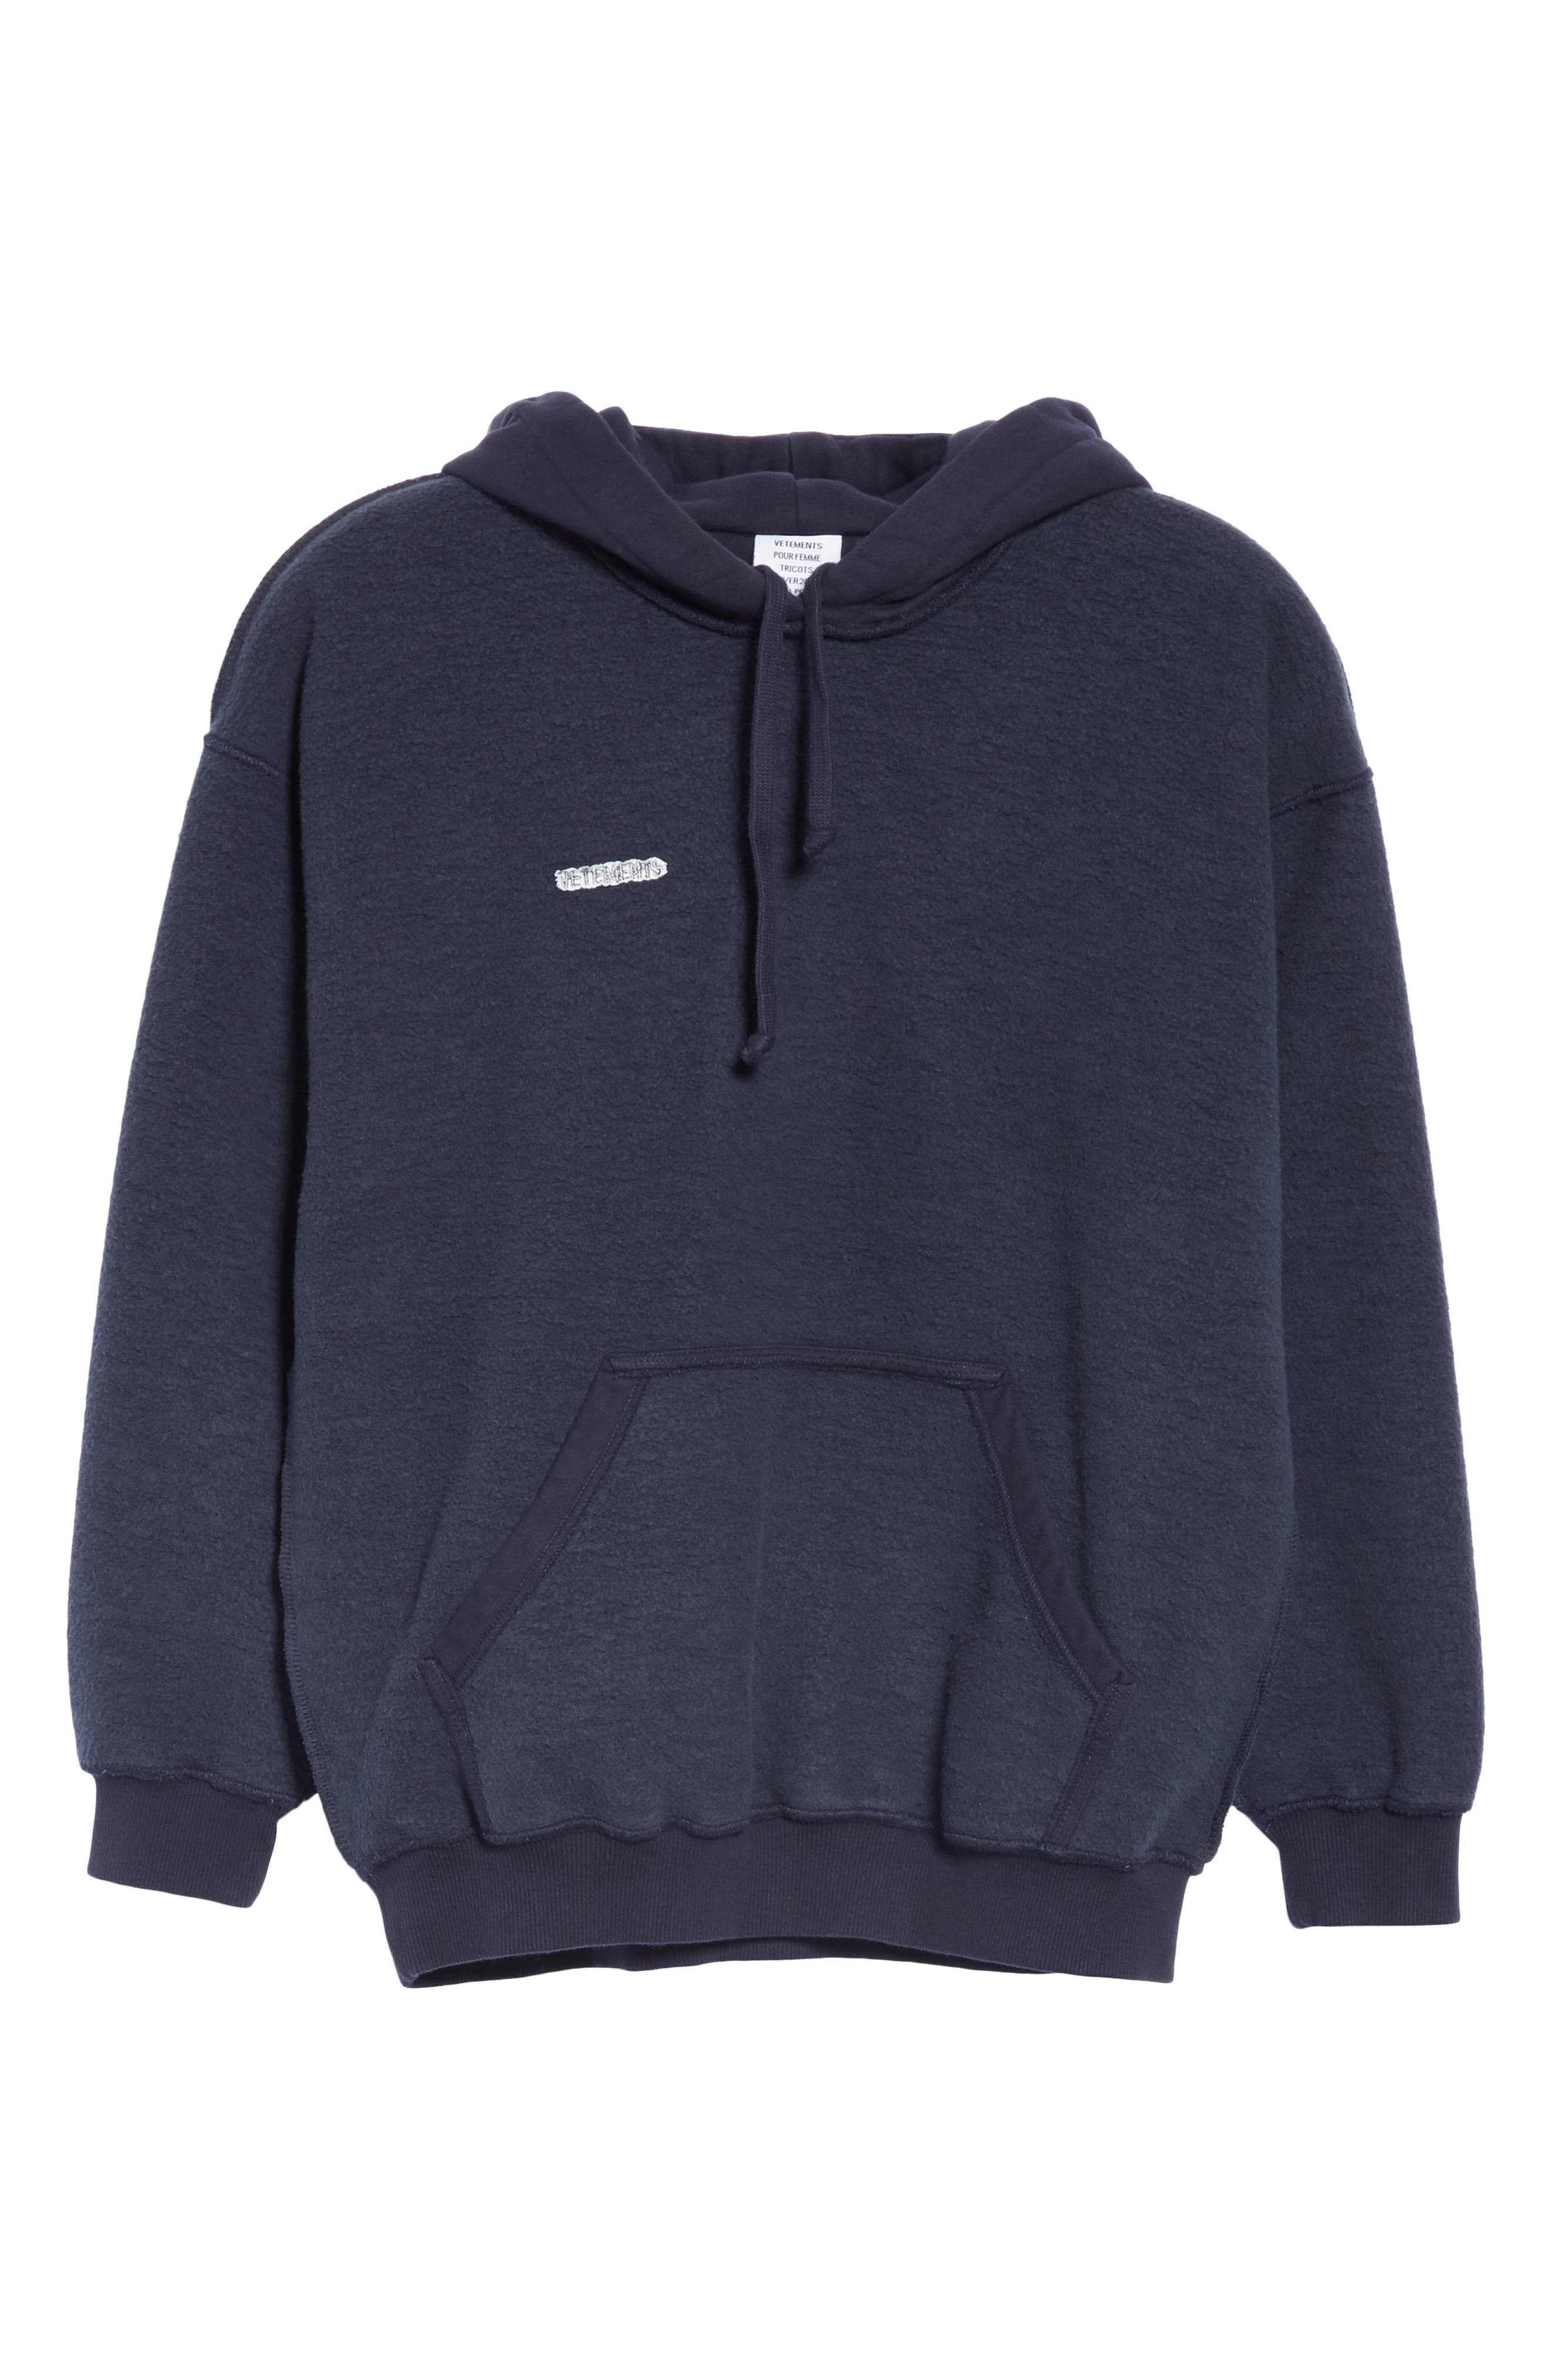 Inside-Out Hoodie,                             Alternate thumbnail 7, color,                             NAVY